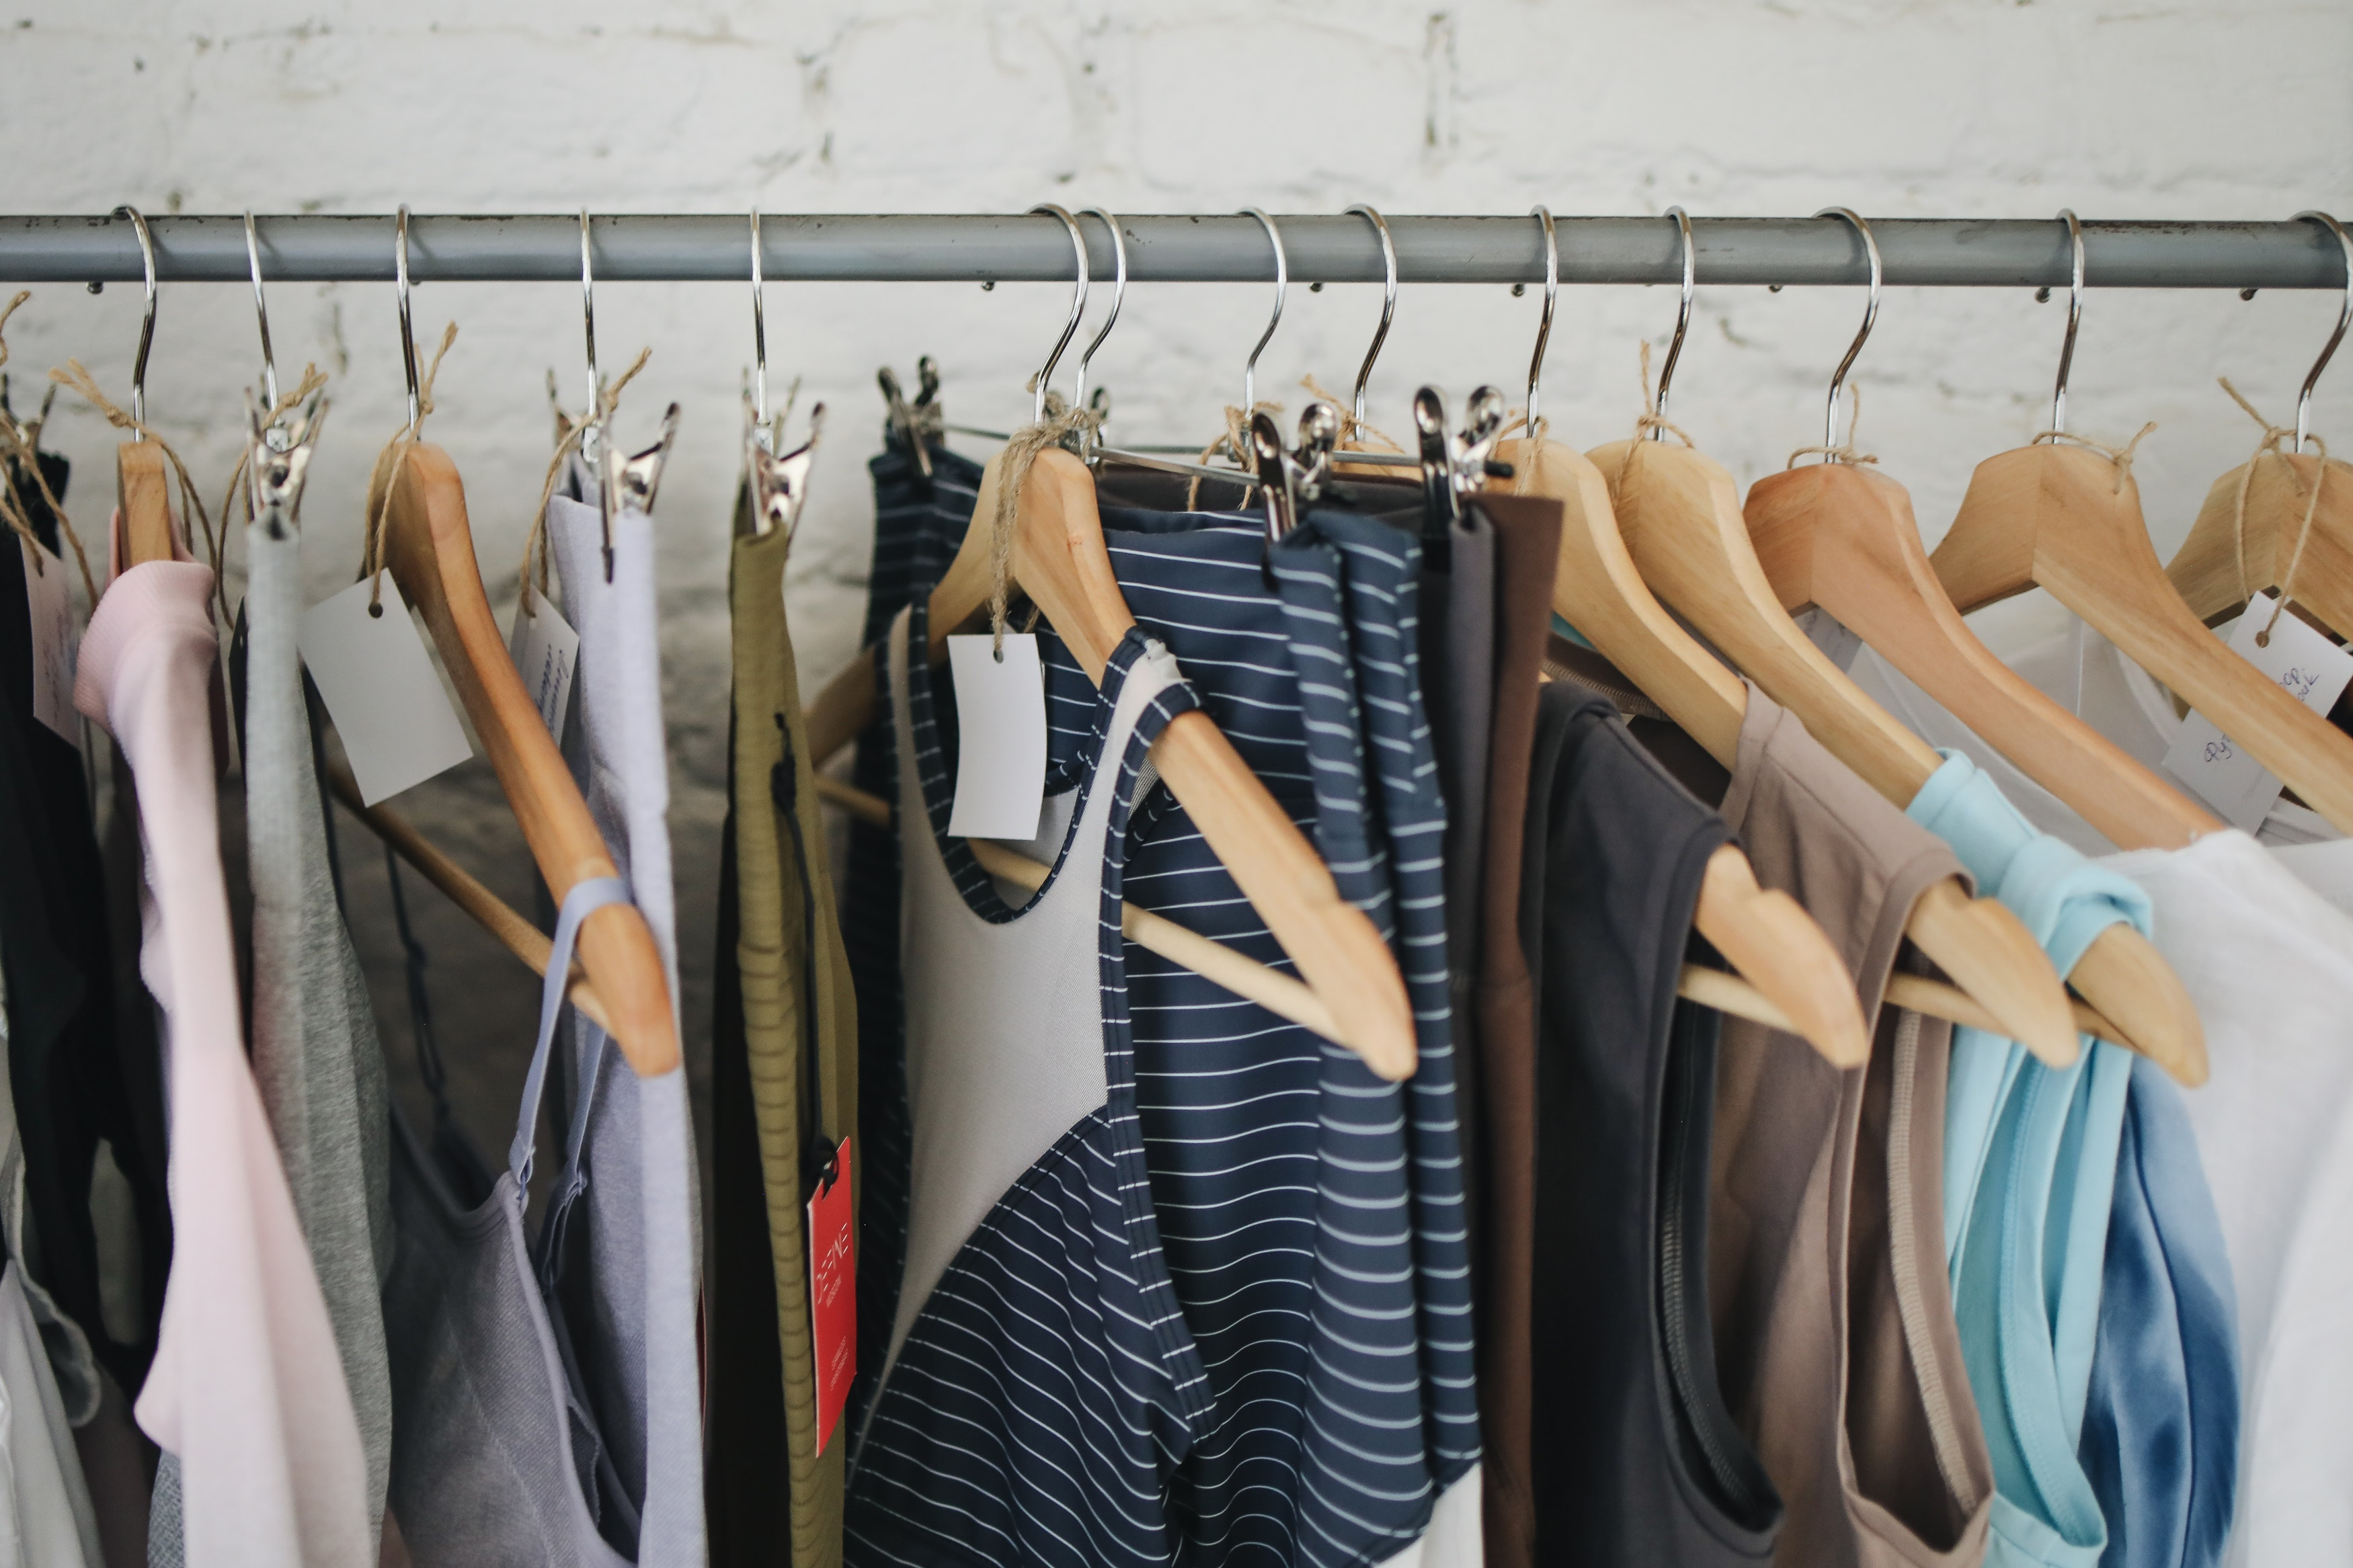 Where to Find Boutique Shopping in Wicker Park